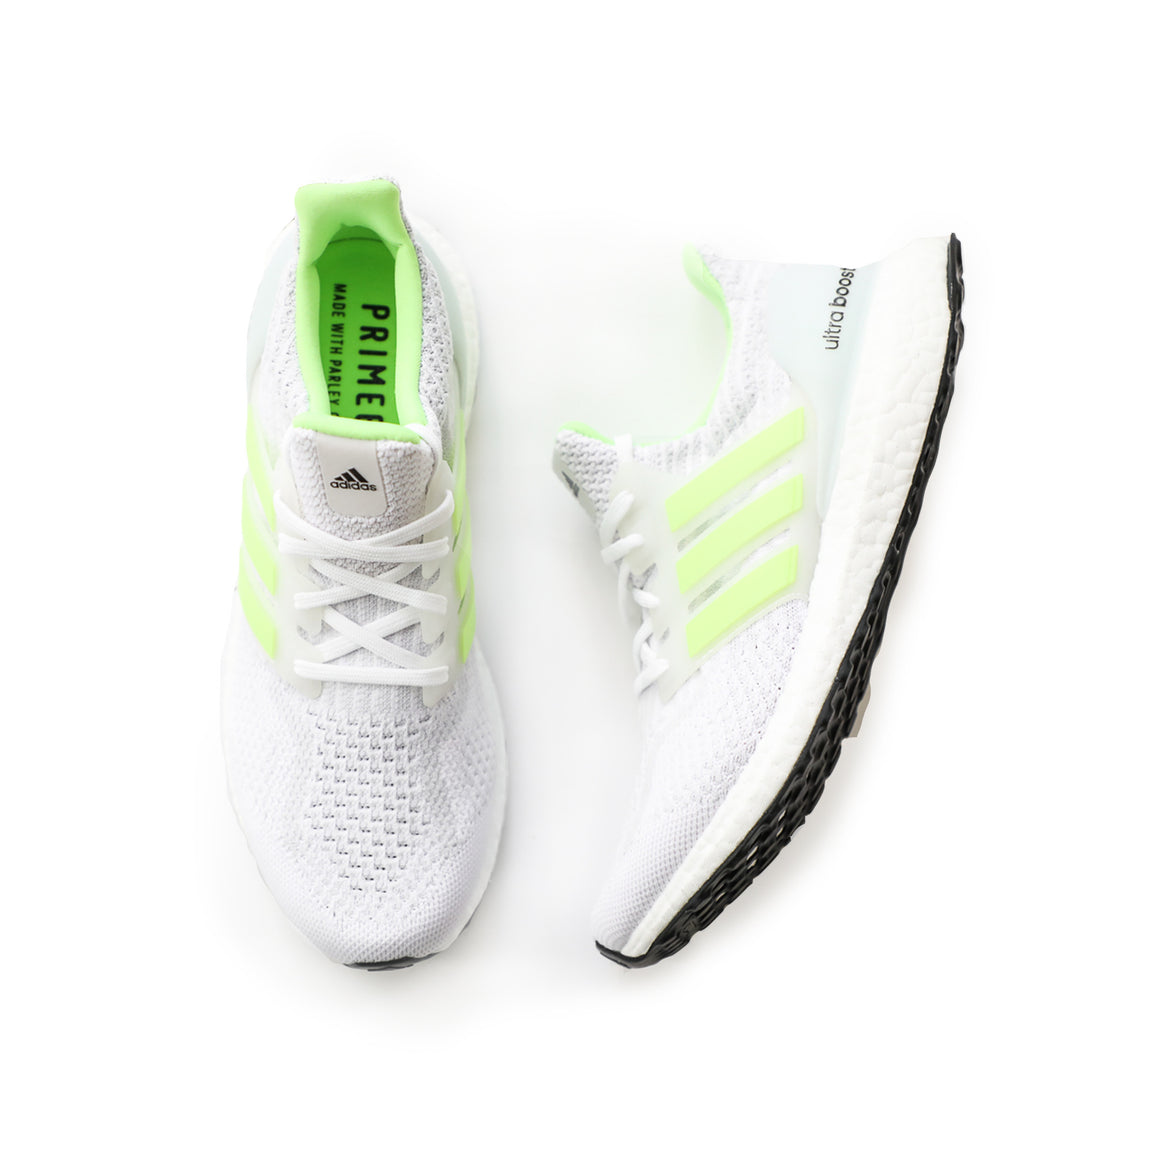 Adidas UltraBoost 5.0 DNA (Cloud White/Signal Green/Dash Grey) - Adidas UltraBoost 5.0 DNA (Cloud White/Signal Green/Dash Grey) -